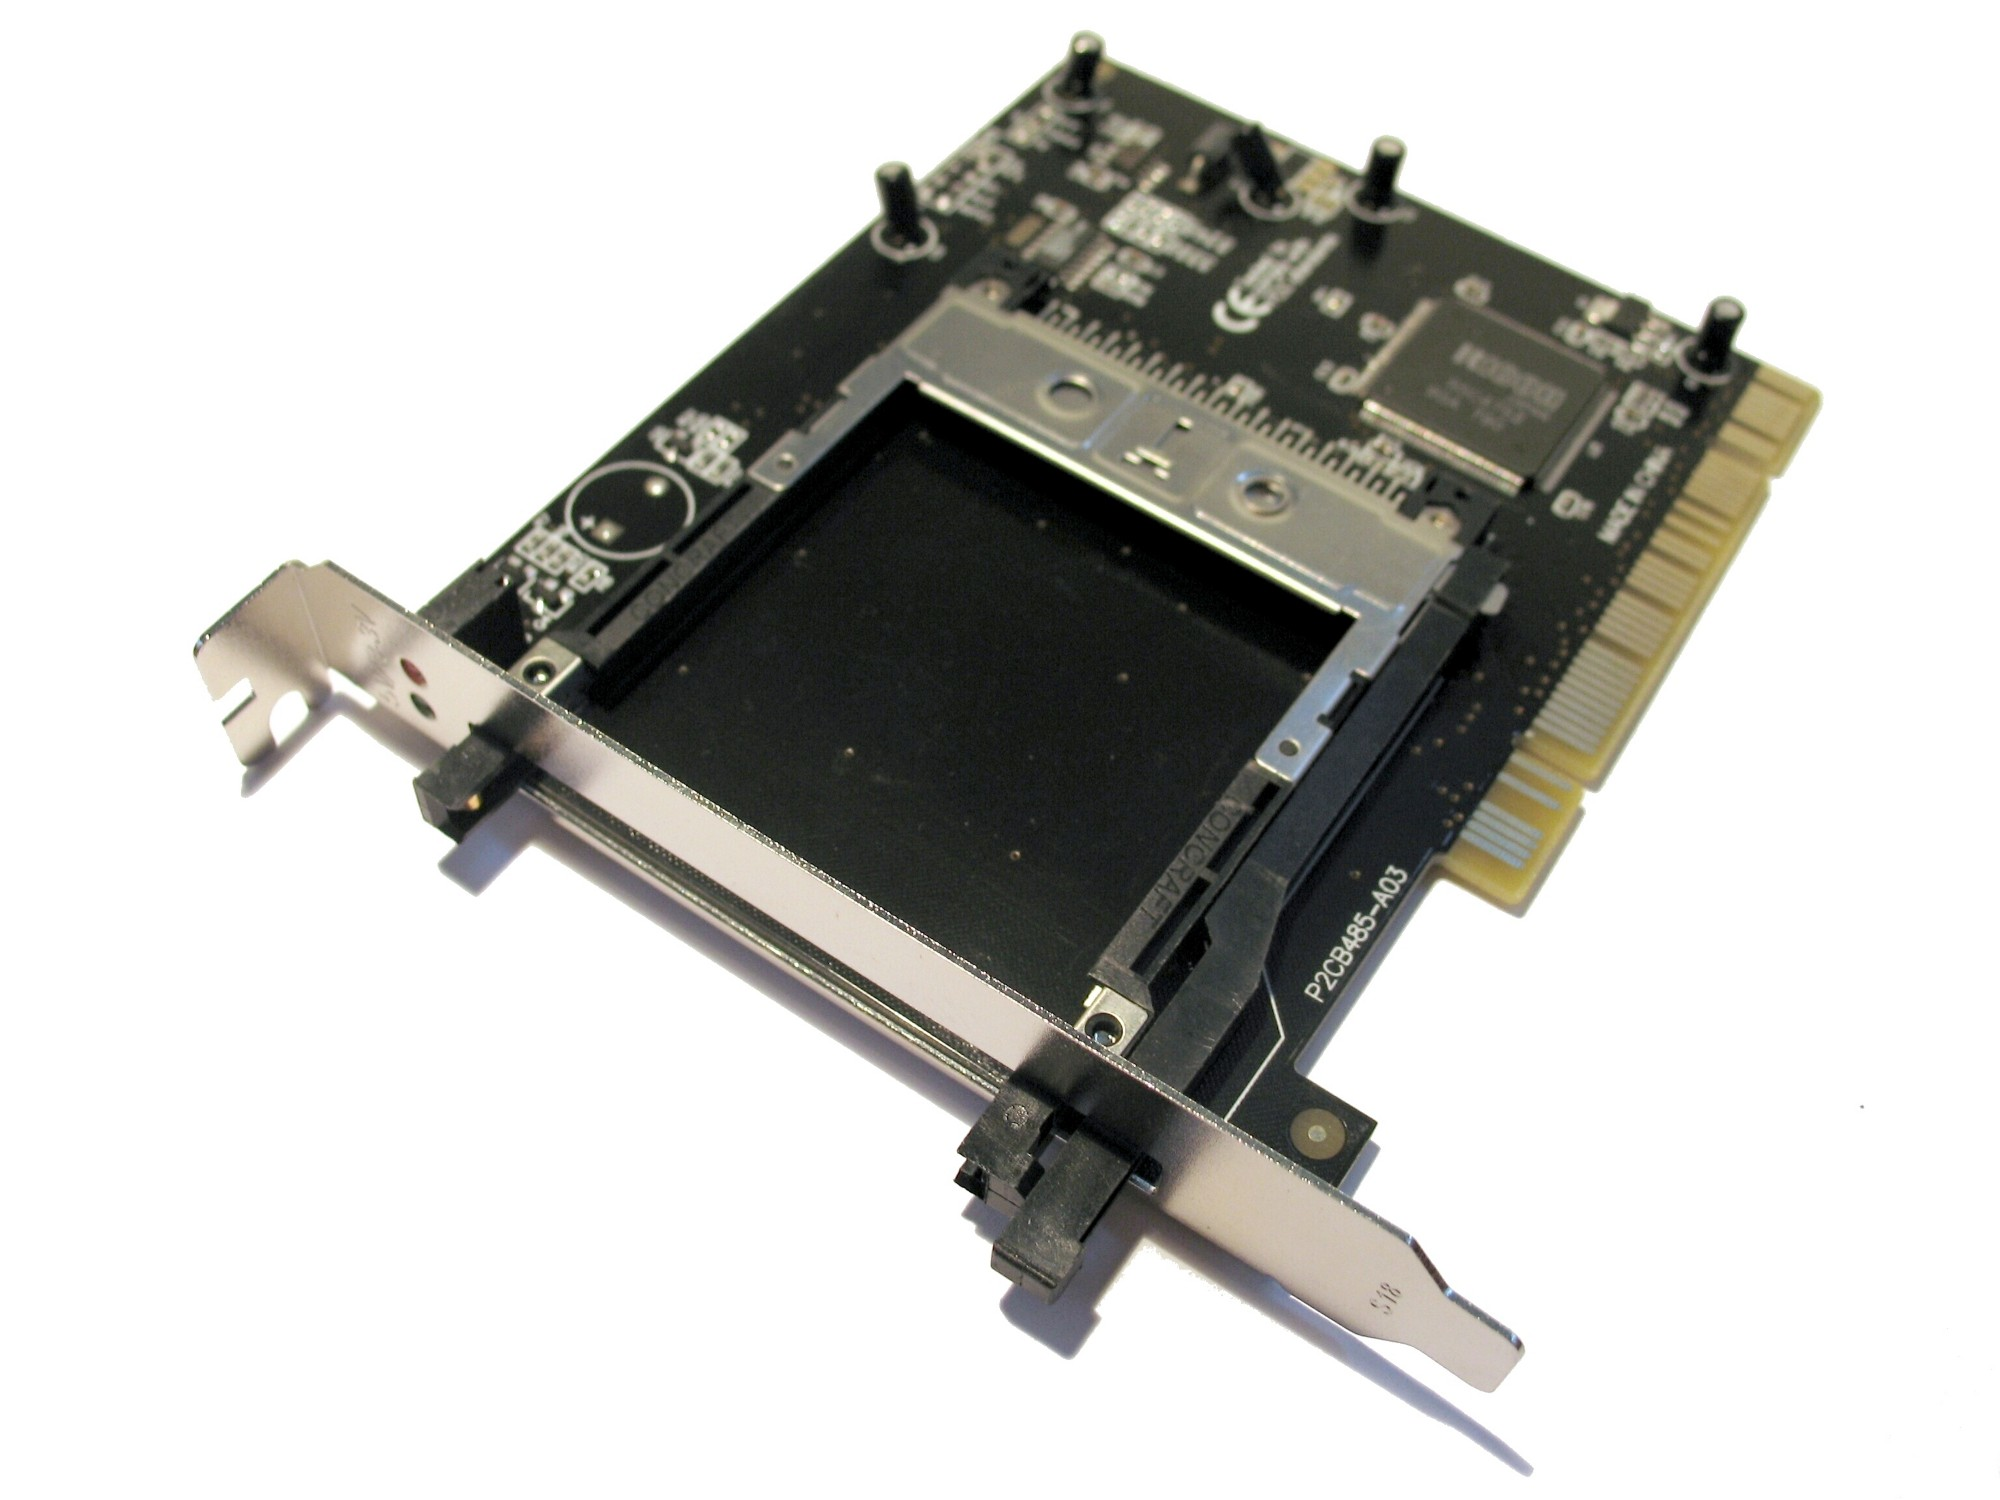 DYNAMODE PCI-PCMCIA PCI > PCMCIA INTERFACE ADAPTER NETWORKING CARD